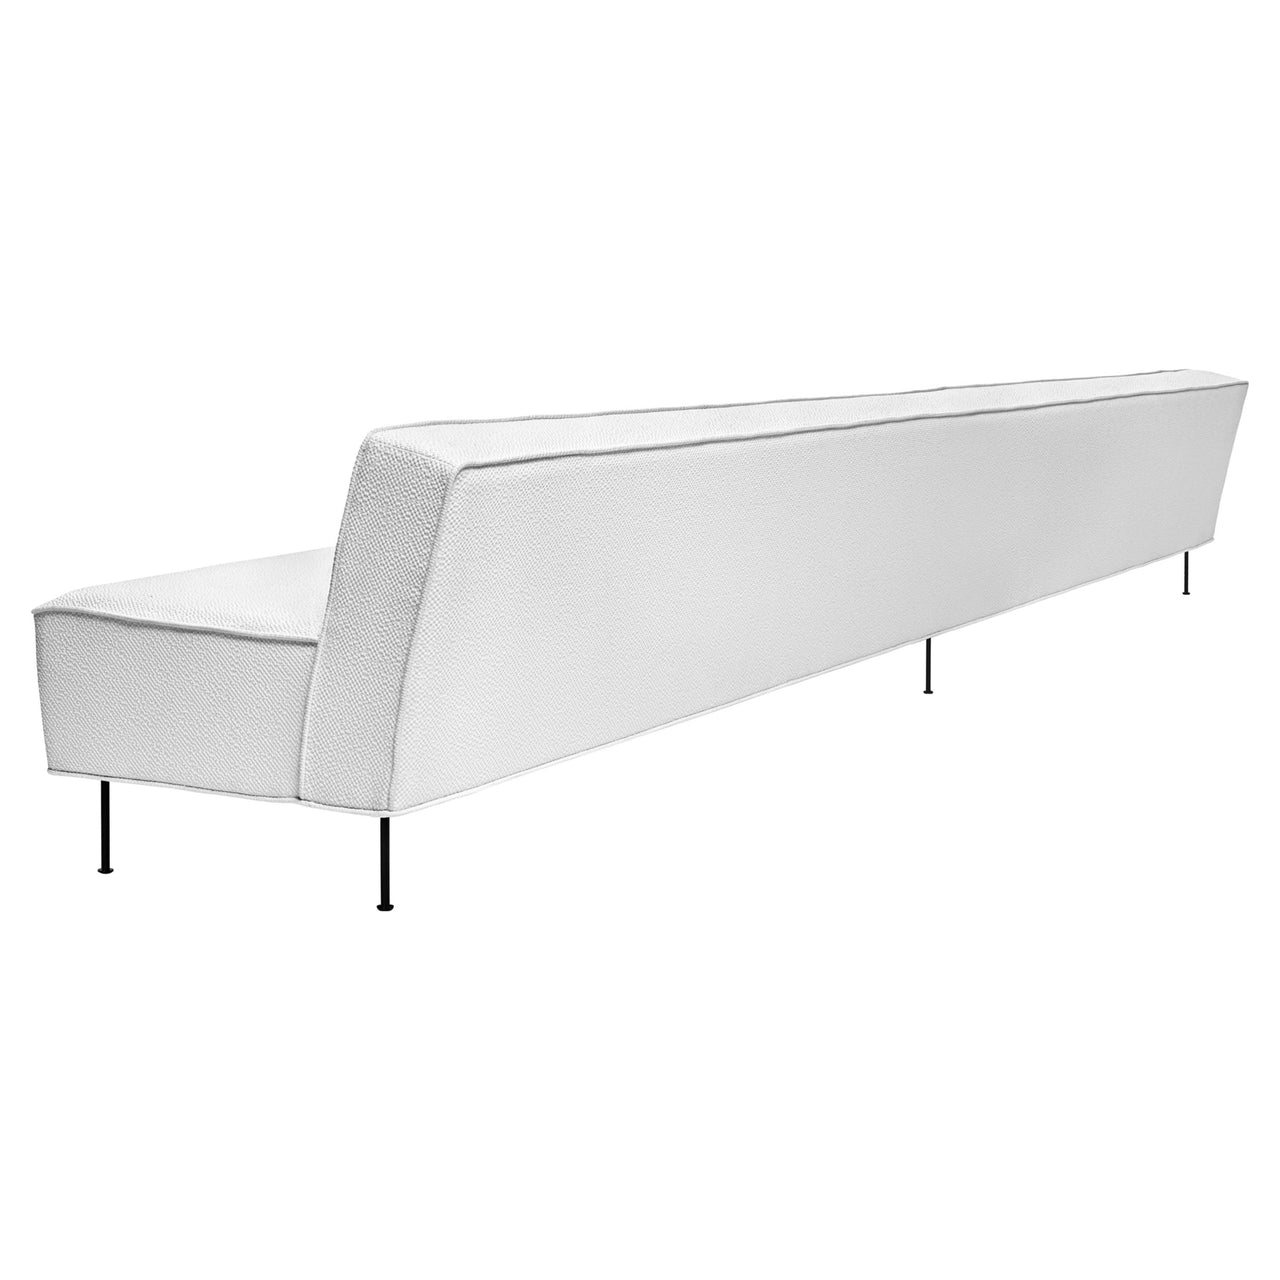 Modern Line Sofa: Large + Black Leg Finish